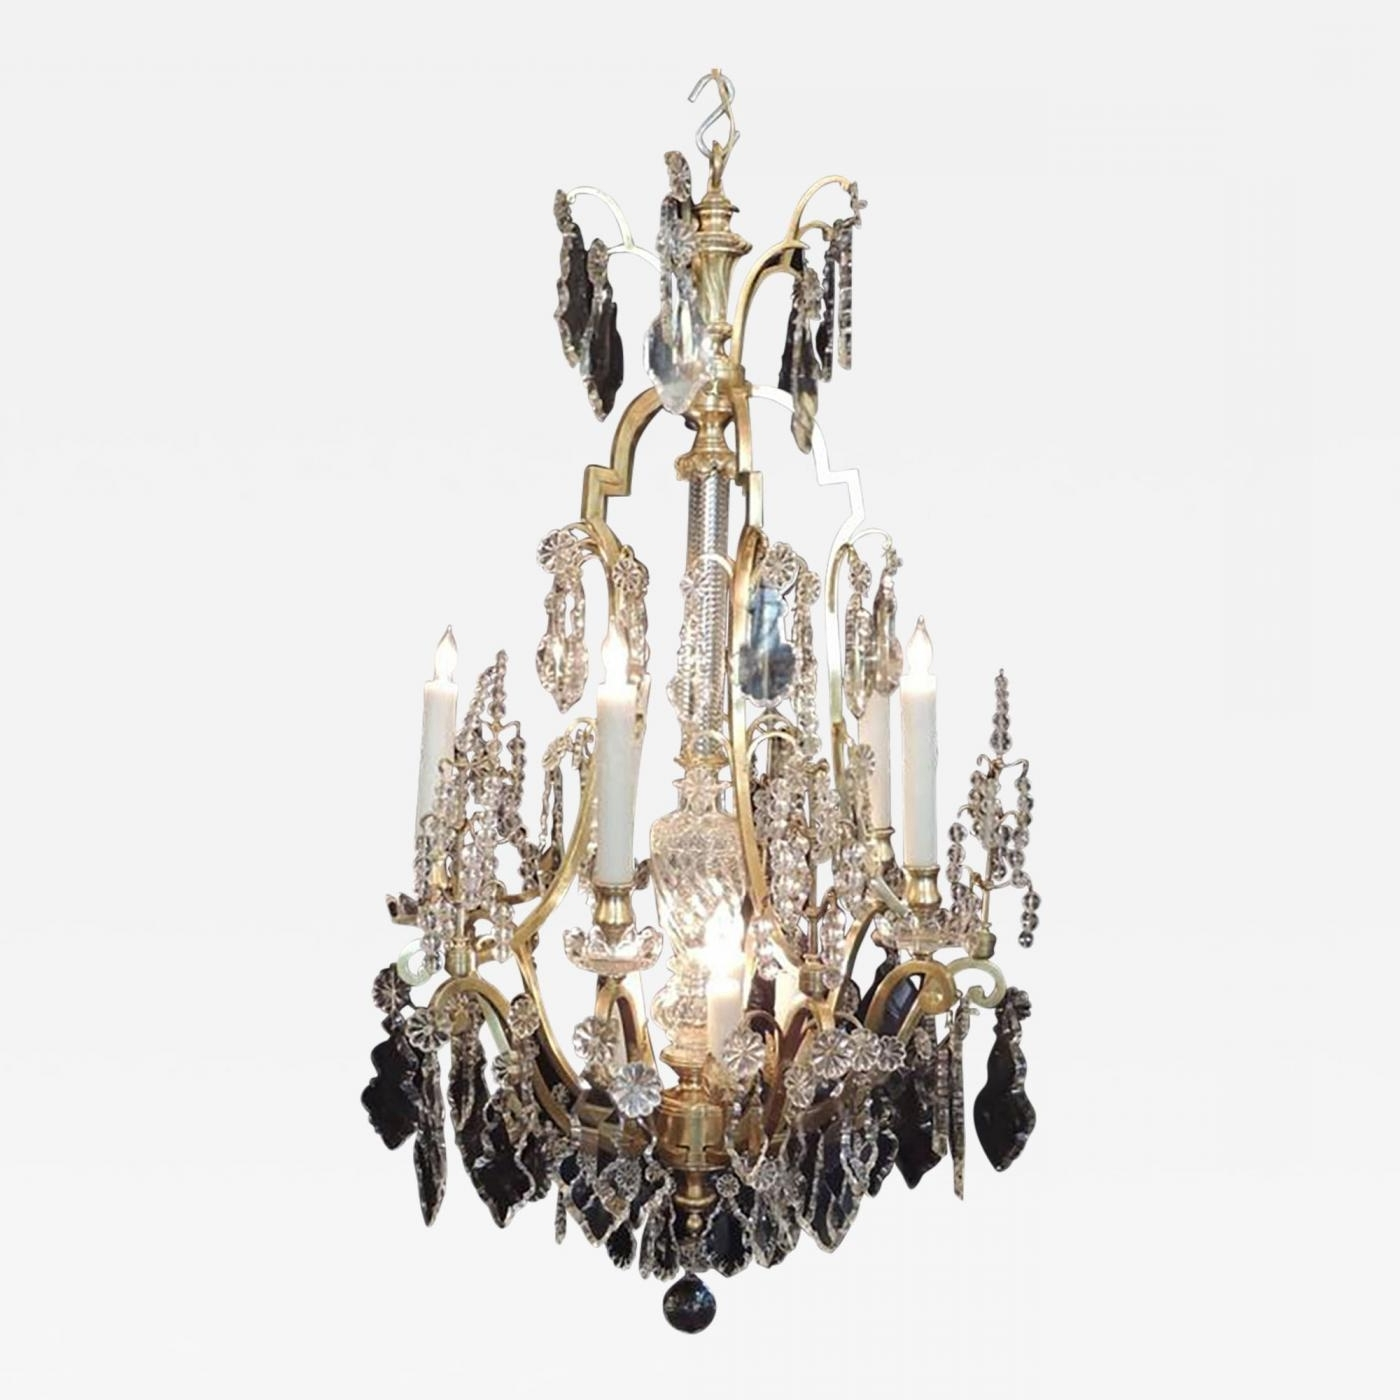 Early 20Th C French Bronze Doré And Lead Crystal Chandelier Throughout Popular Lead Crystal Chandelier (View 7 of 15)